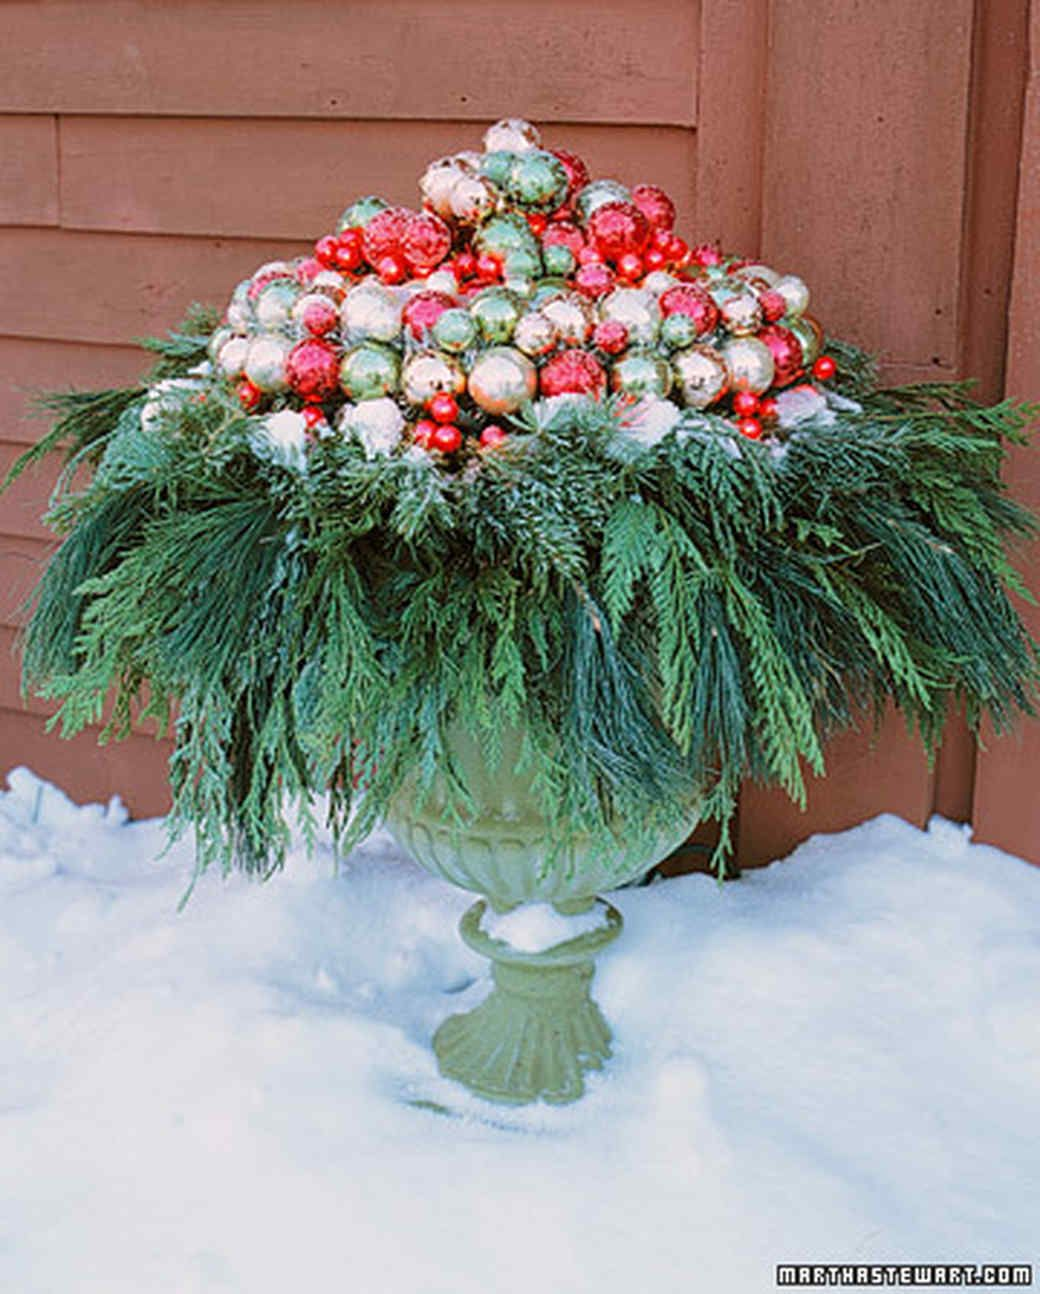 Decorative Urn Impressive Urn Topper  Ornament Outdoor Christmas And Christmas Decor Design Ideas